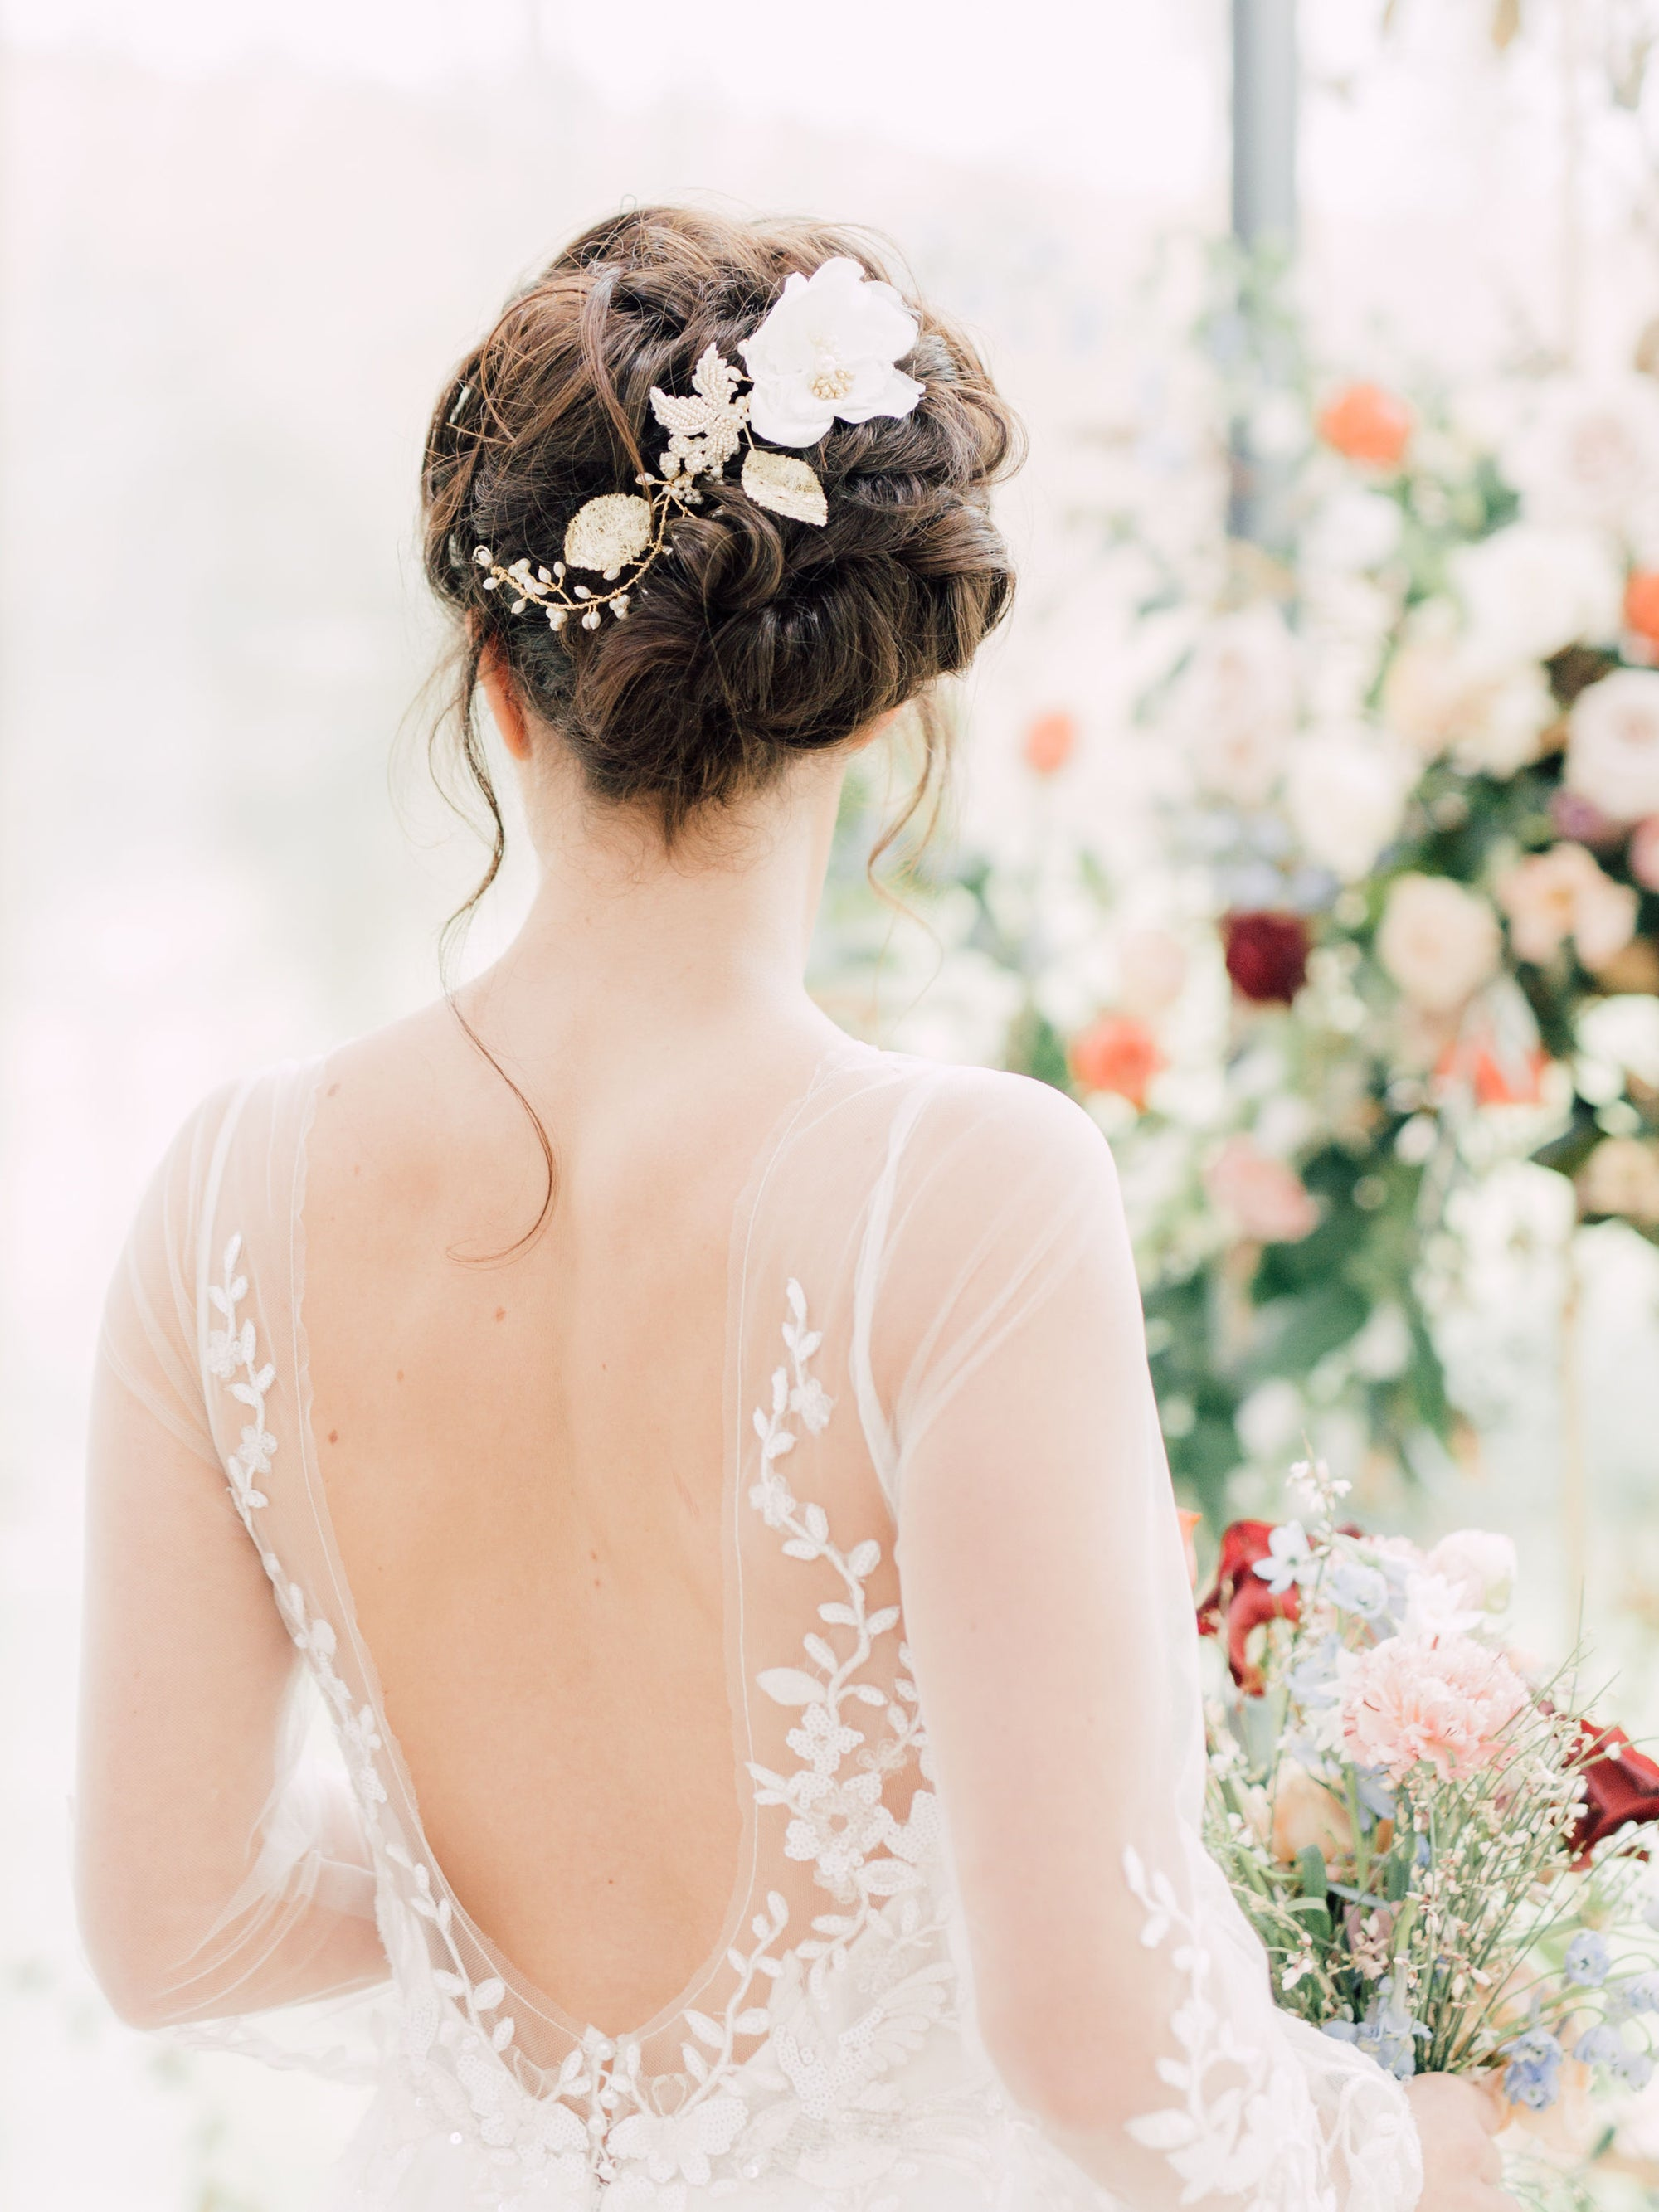 My top 4 wedding hair accessory choices for the modern bride.